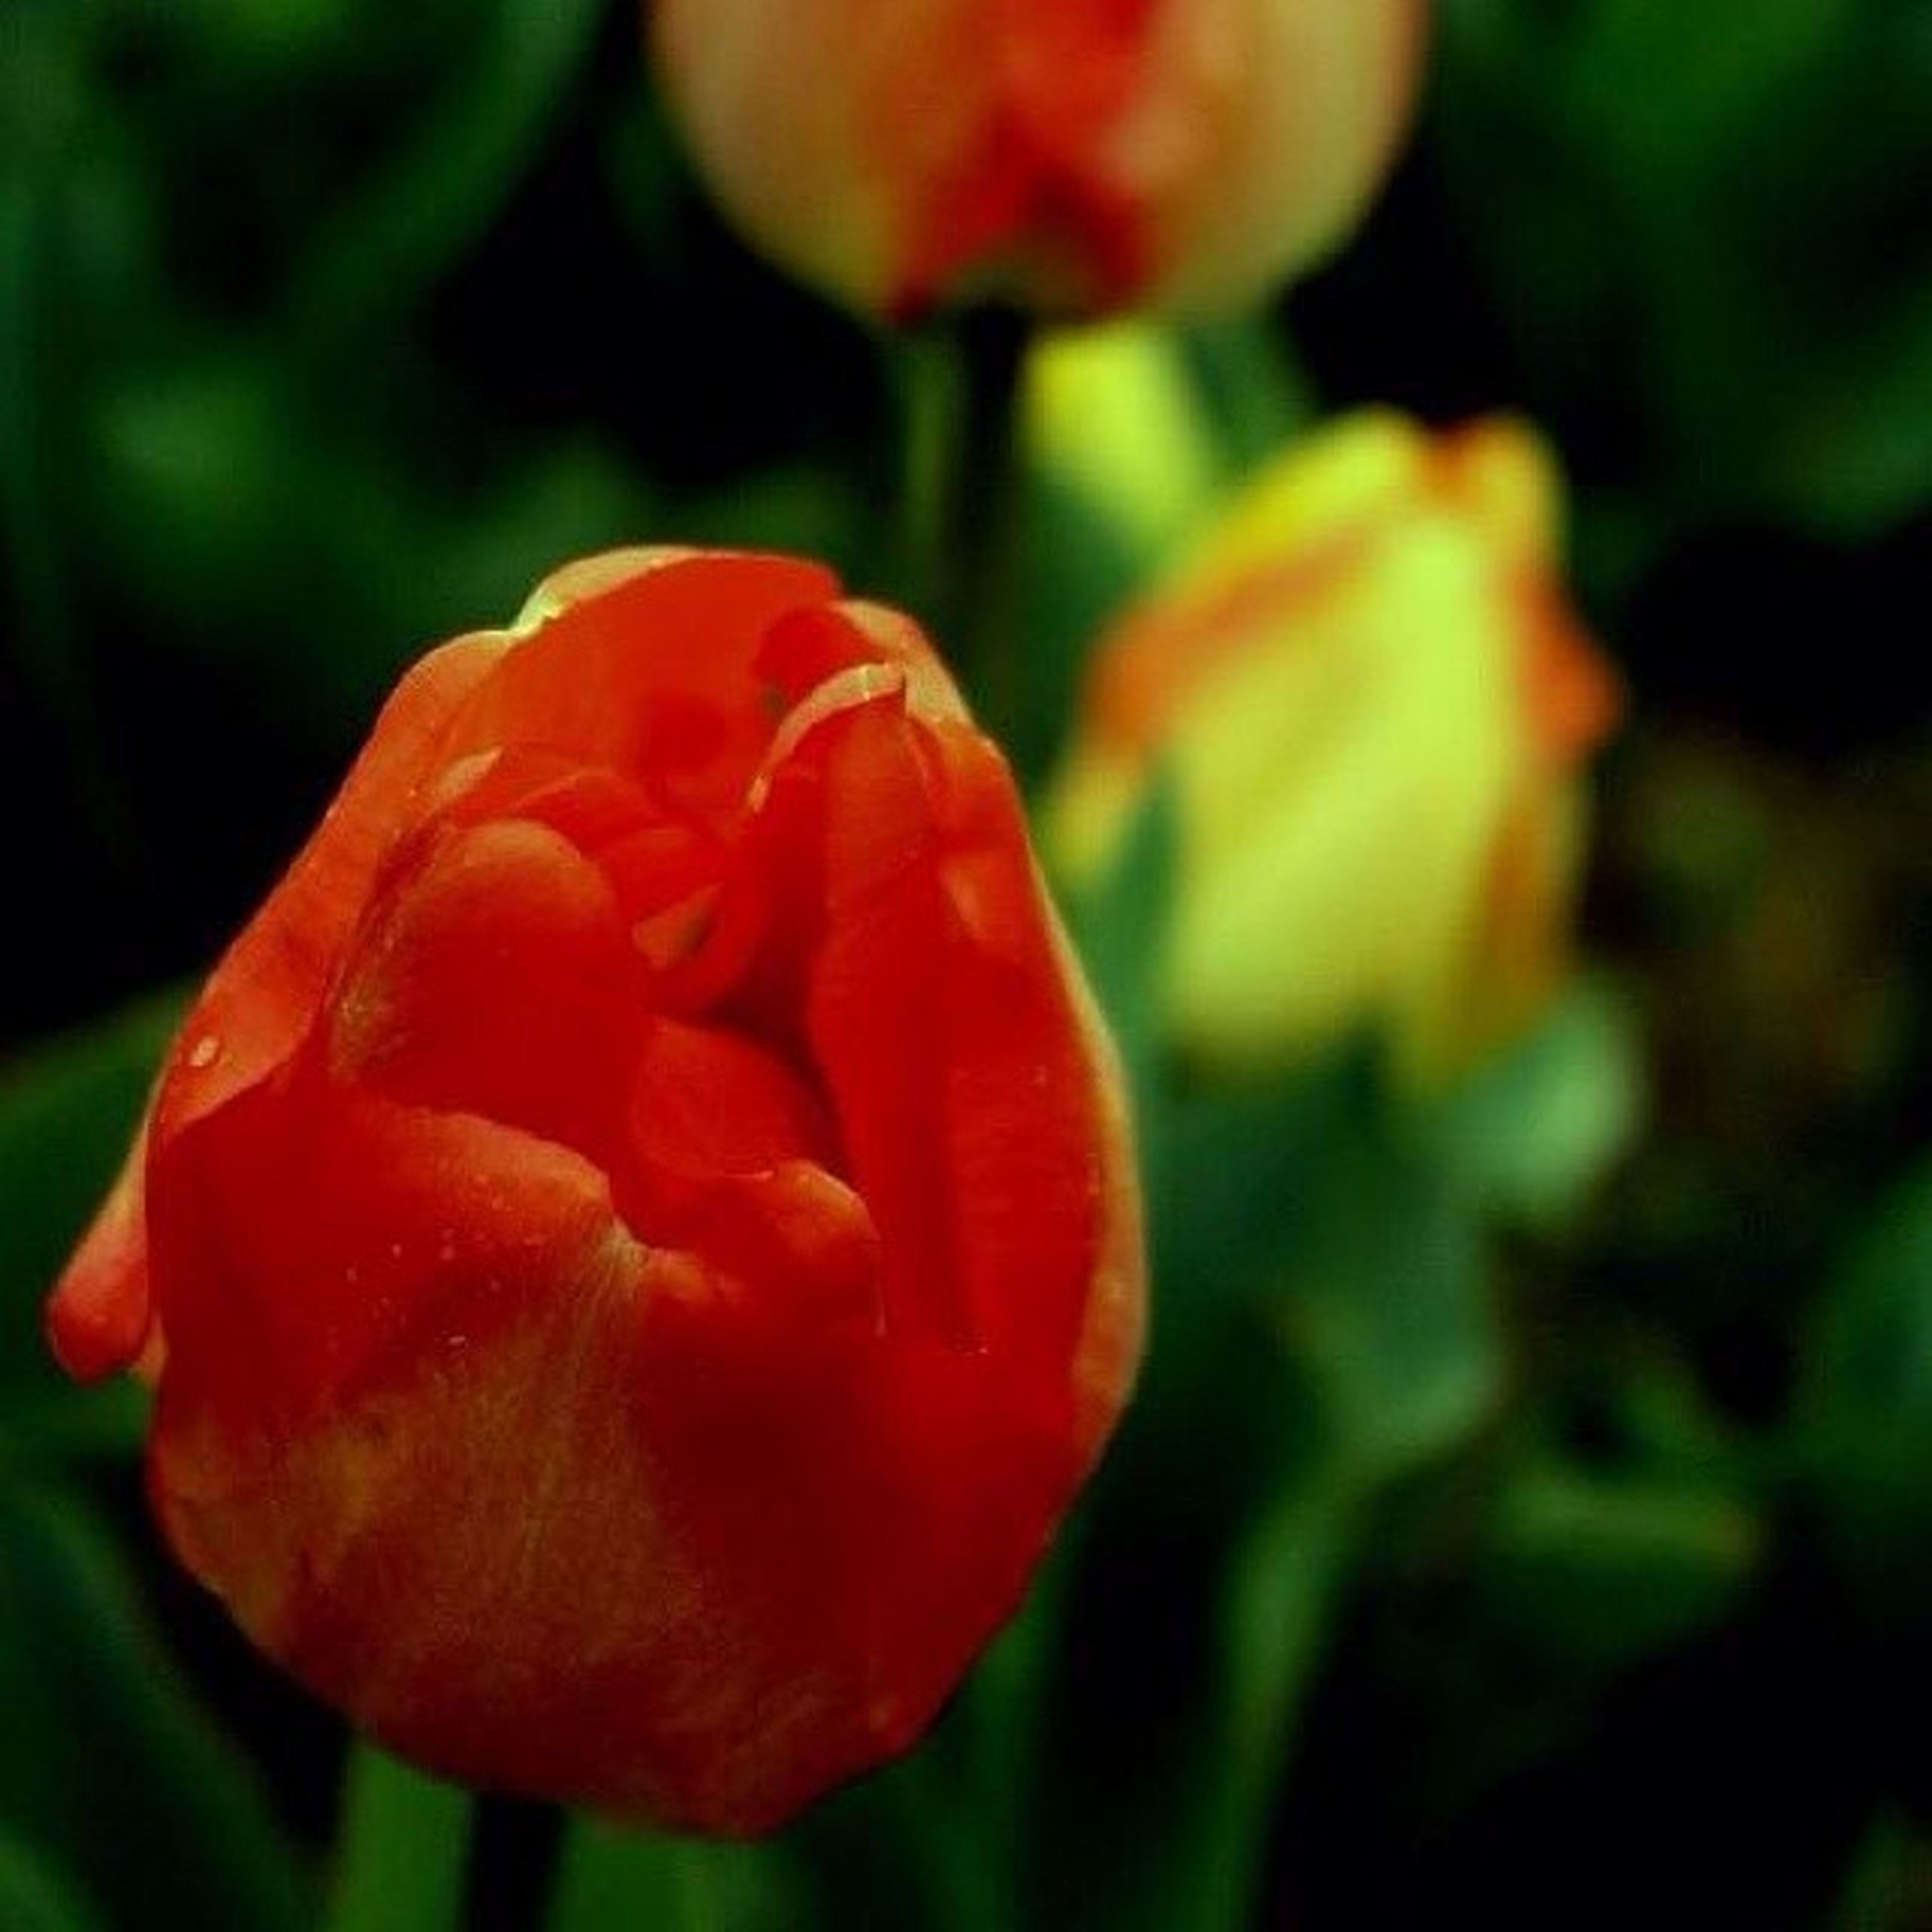 freshness, flower, petal, focus on foreground, close-up, growth, flower head, red, fragility, beauty in nature, plant, nature, blooming, selective focus, rose - flower, bud, tulip, single flower, in bloom, park - man made space